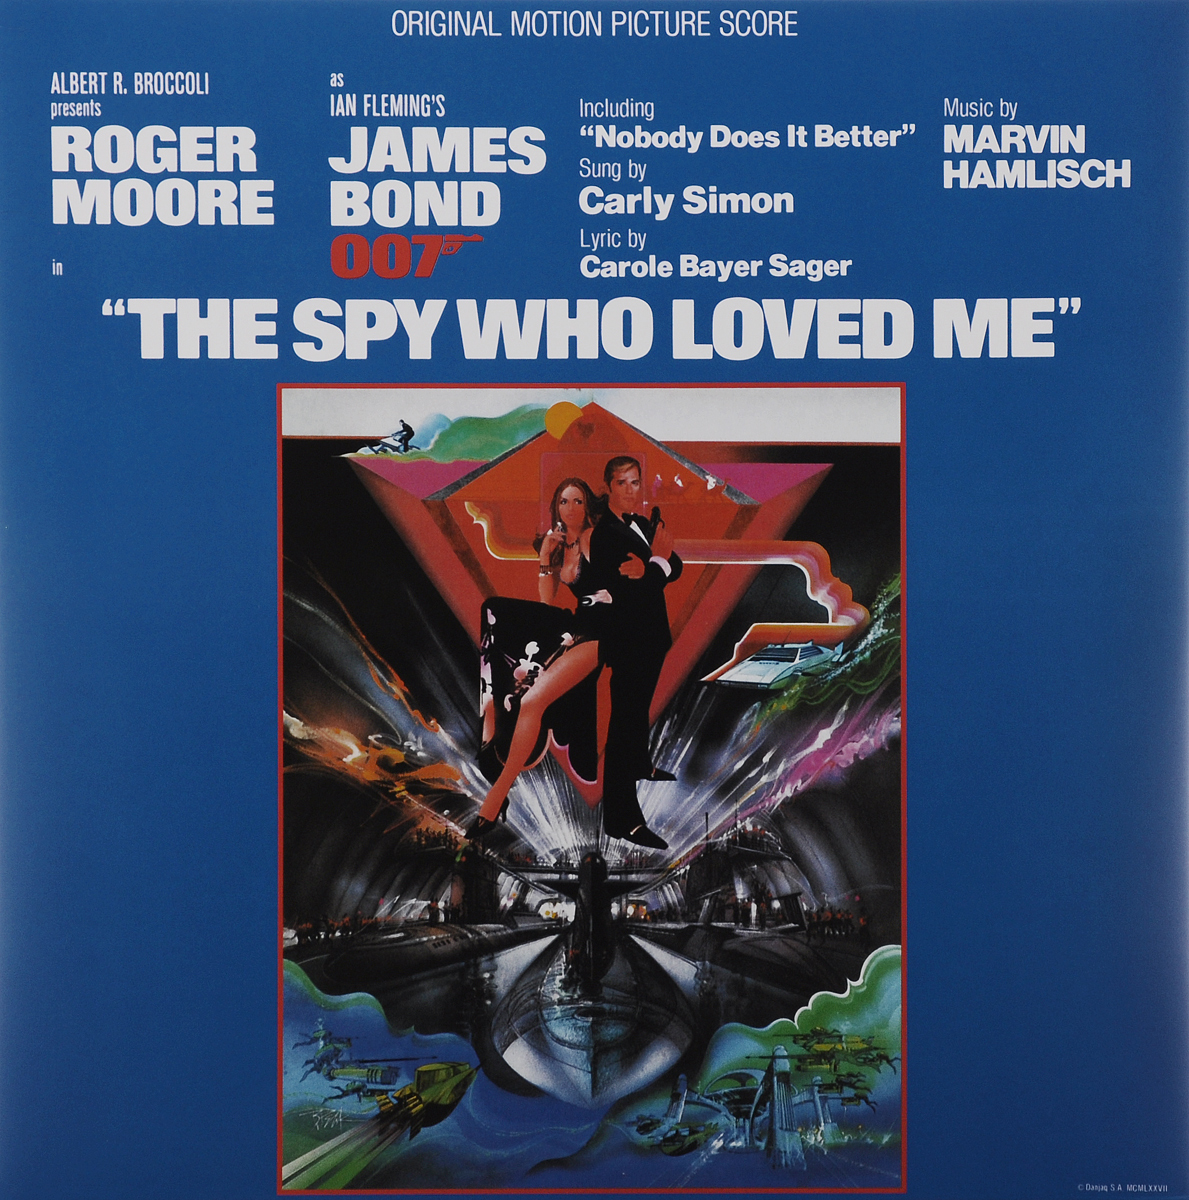 The Spy Who Loved Me. Original Motion Picture Score (LP)